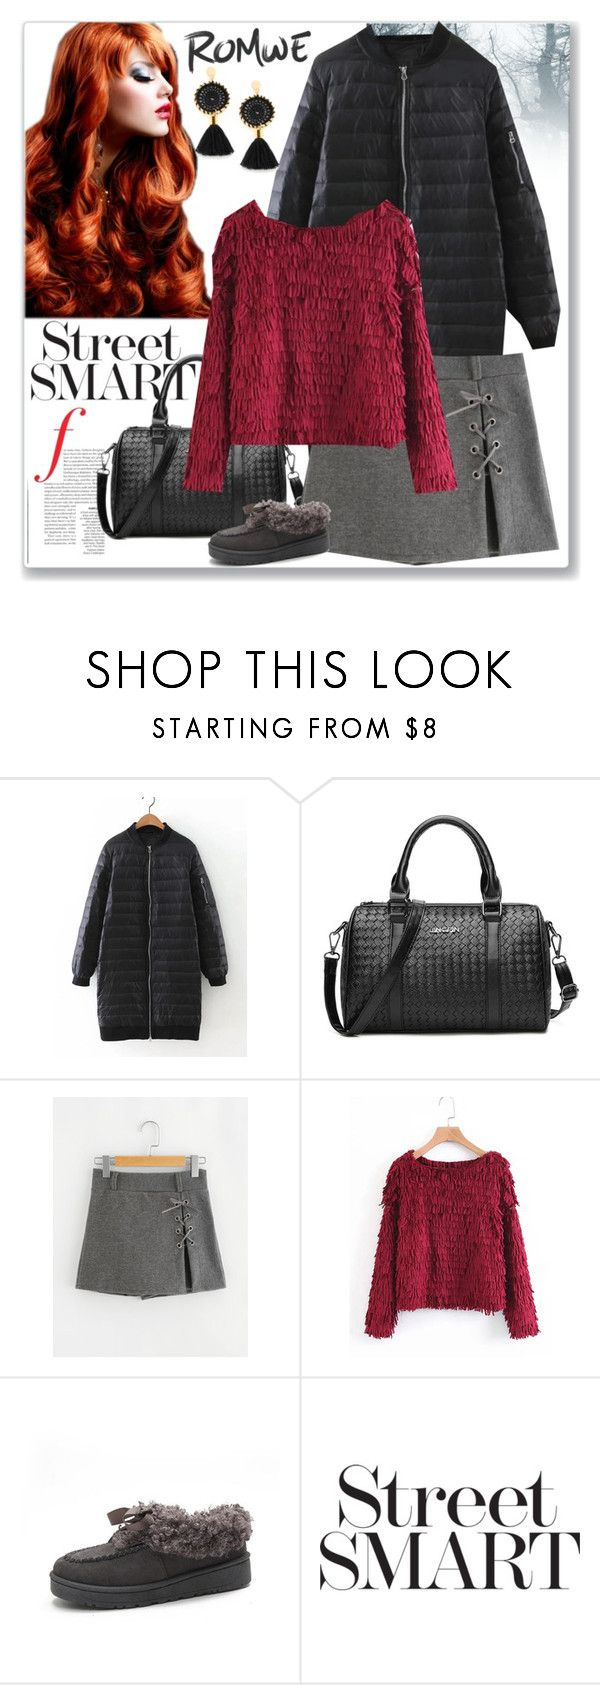 """""""www.romwe.com-LIV-4"""" by ane-twist ❤ liked on Polyvore featuring Pierre Hardy and romwe"""